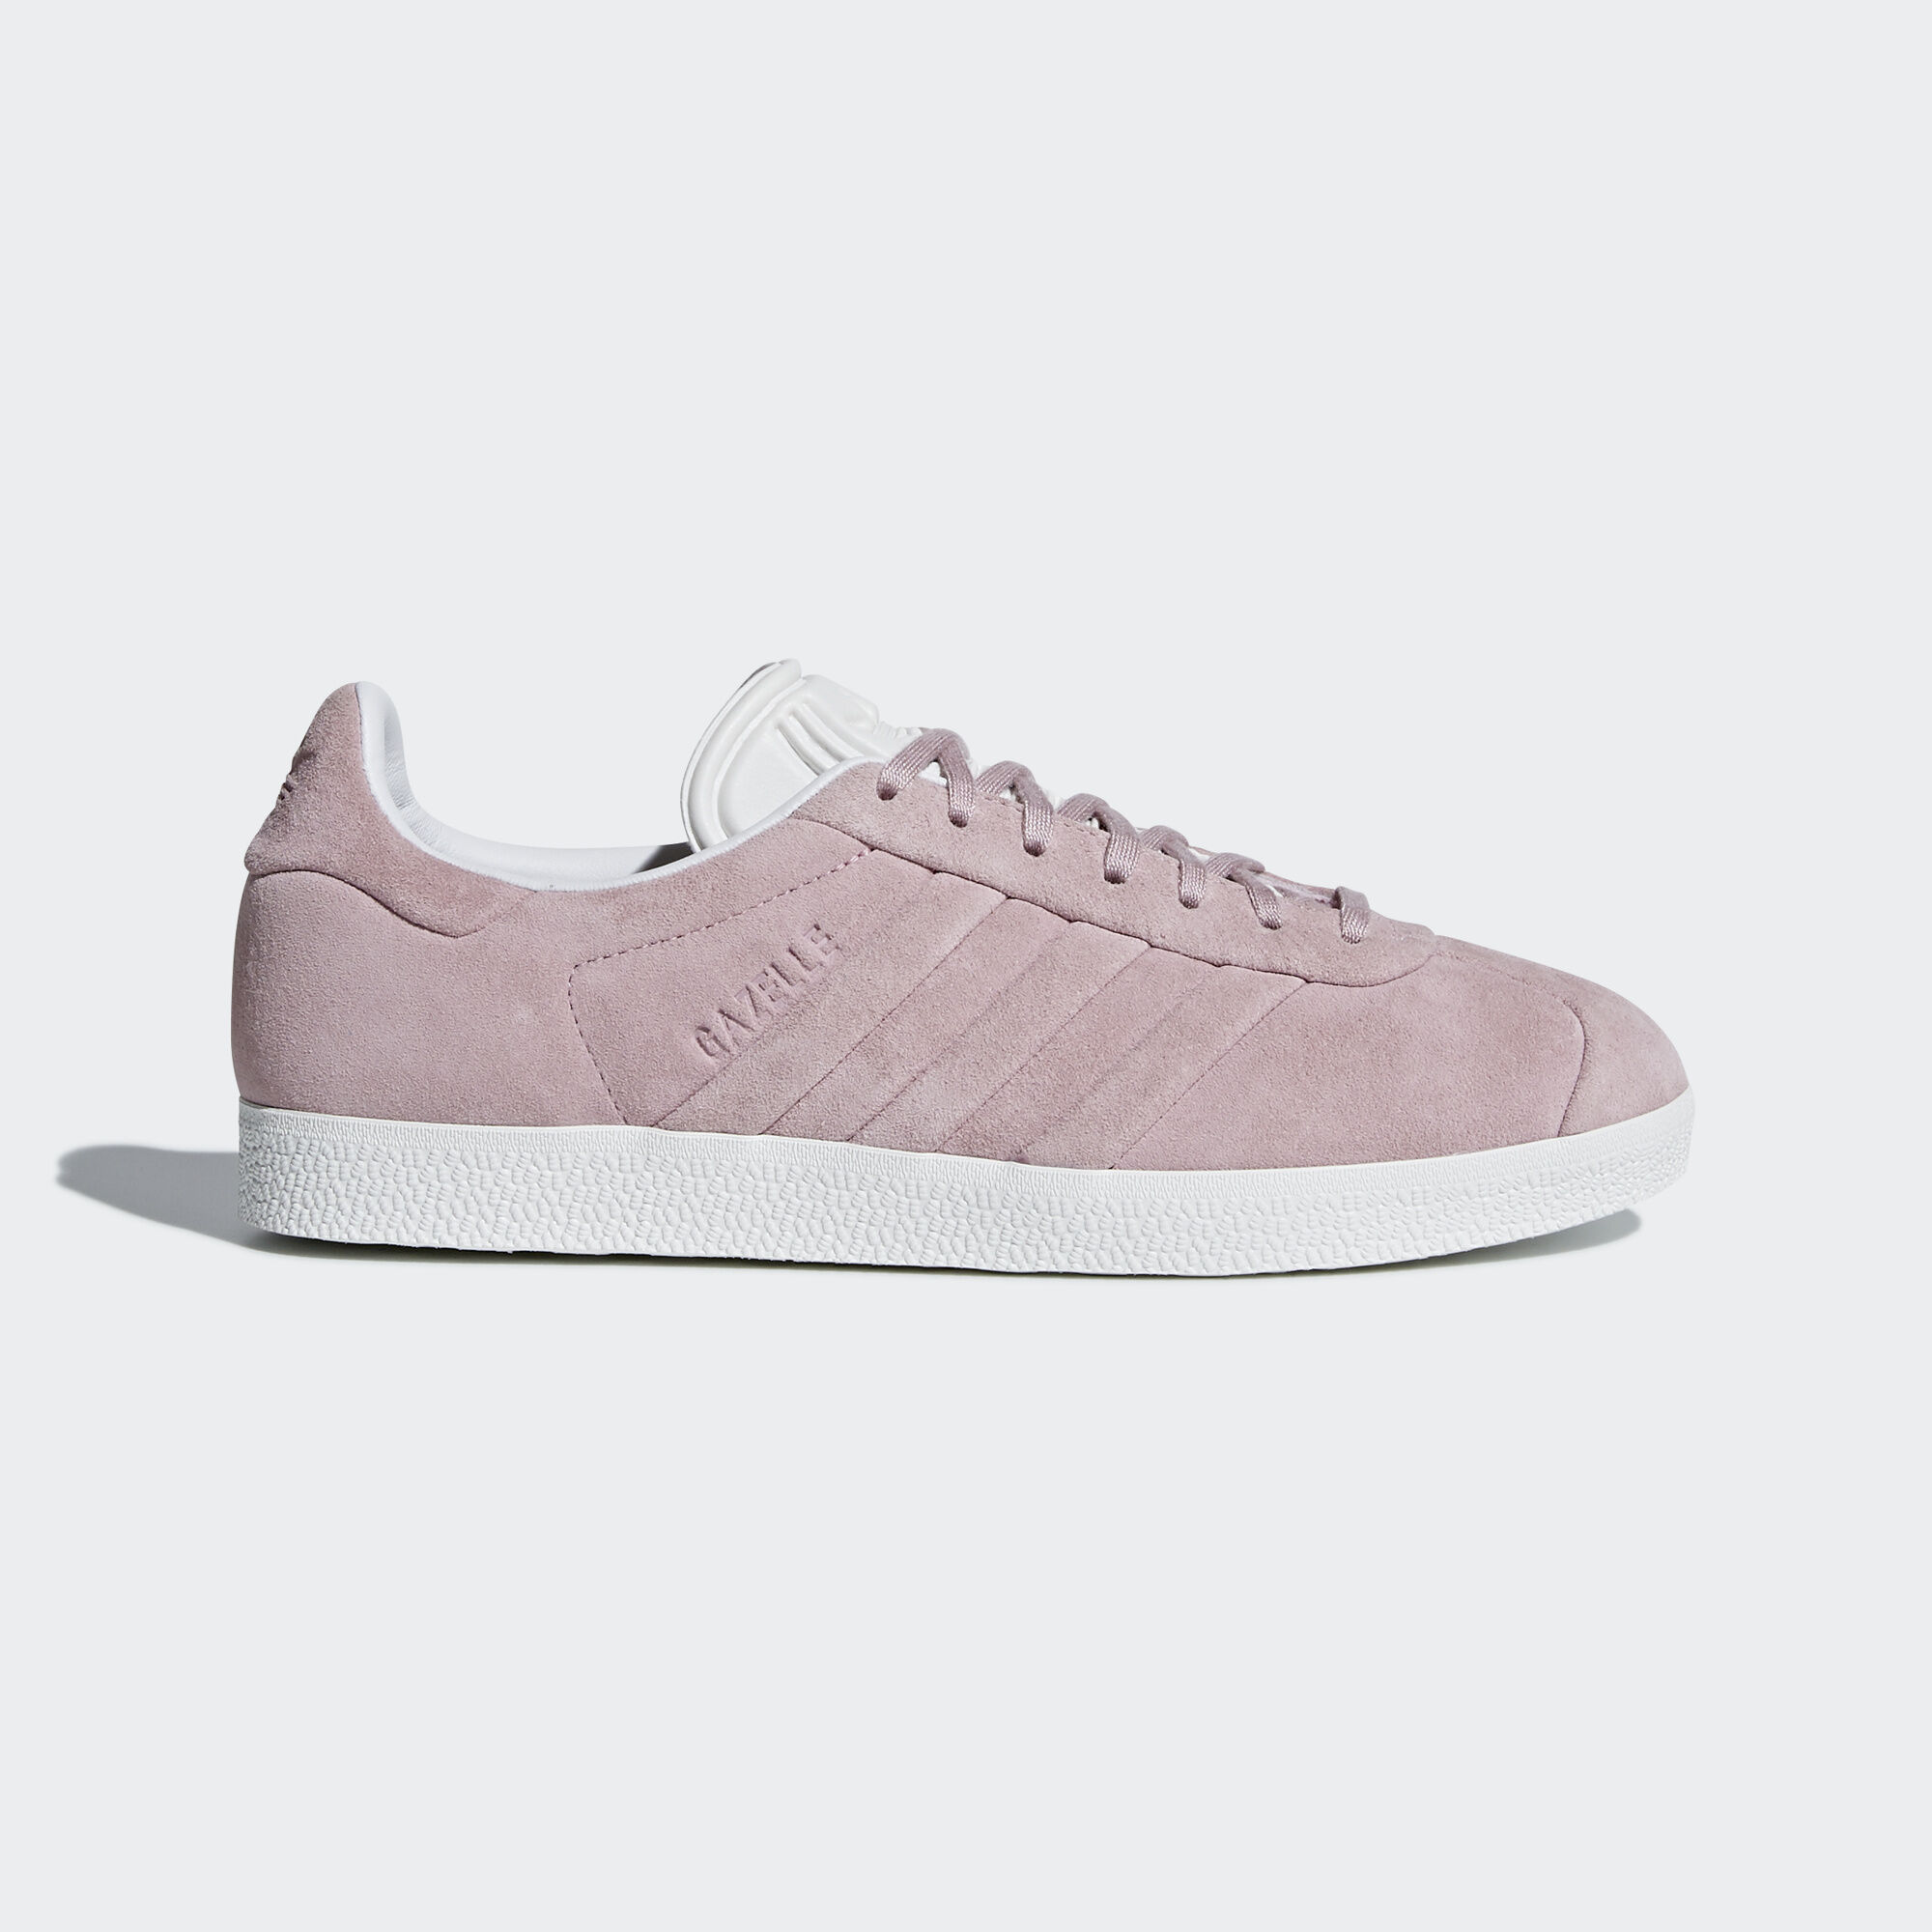 new product 830e2 900ef adidas - Gazelle Stitch and Turn Shoes Wonder PinkWonder PinkFtwr White  BB6708. Women Originals